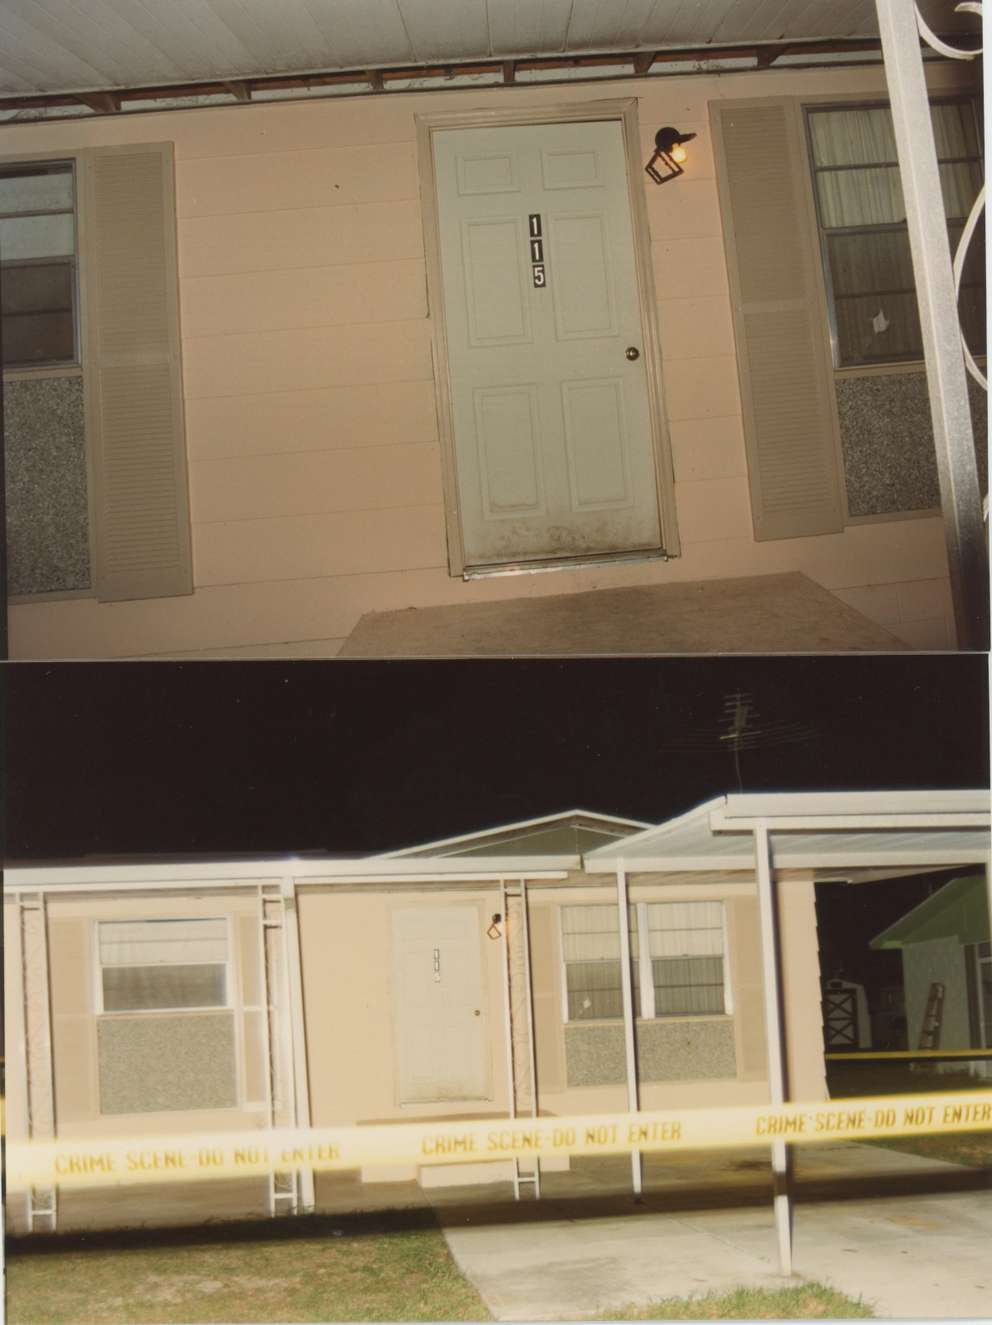 Oscar Welch was found dead on Nov. 4, 1992, at his home in Polk City. [Polk County Sheriff's Office]